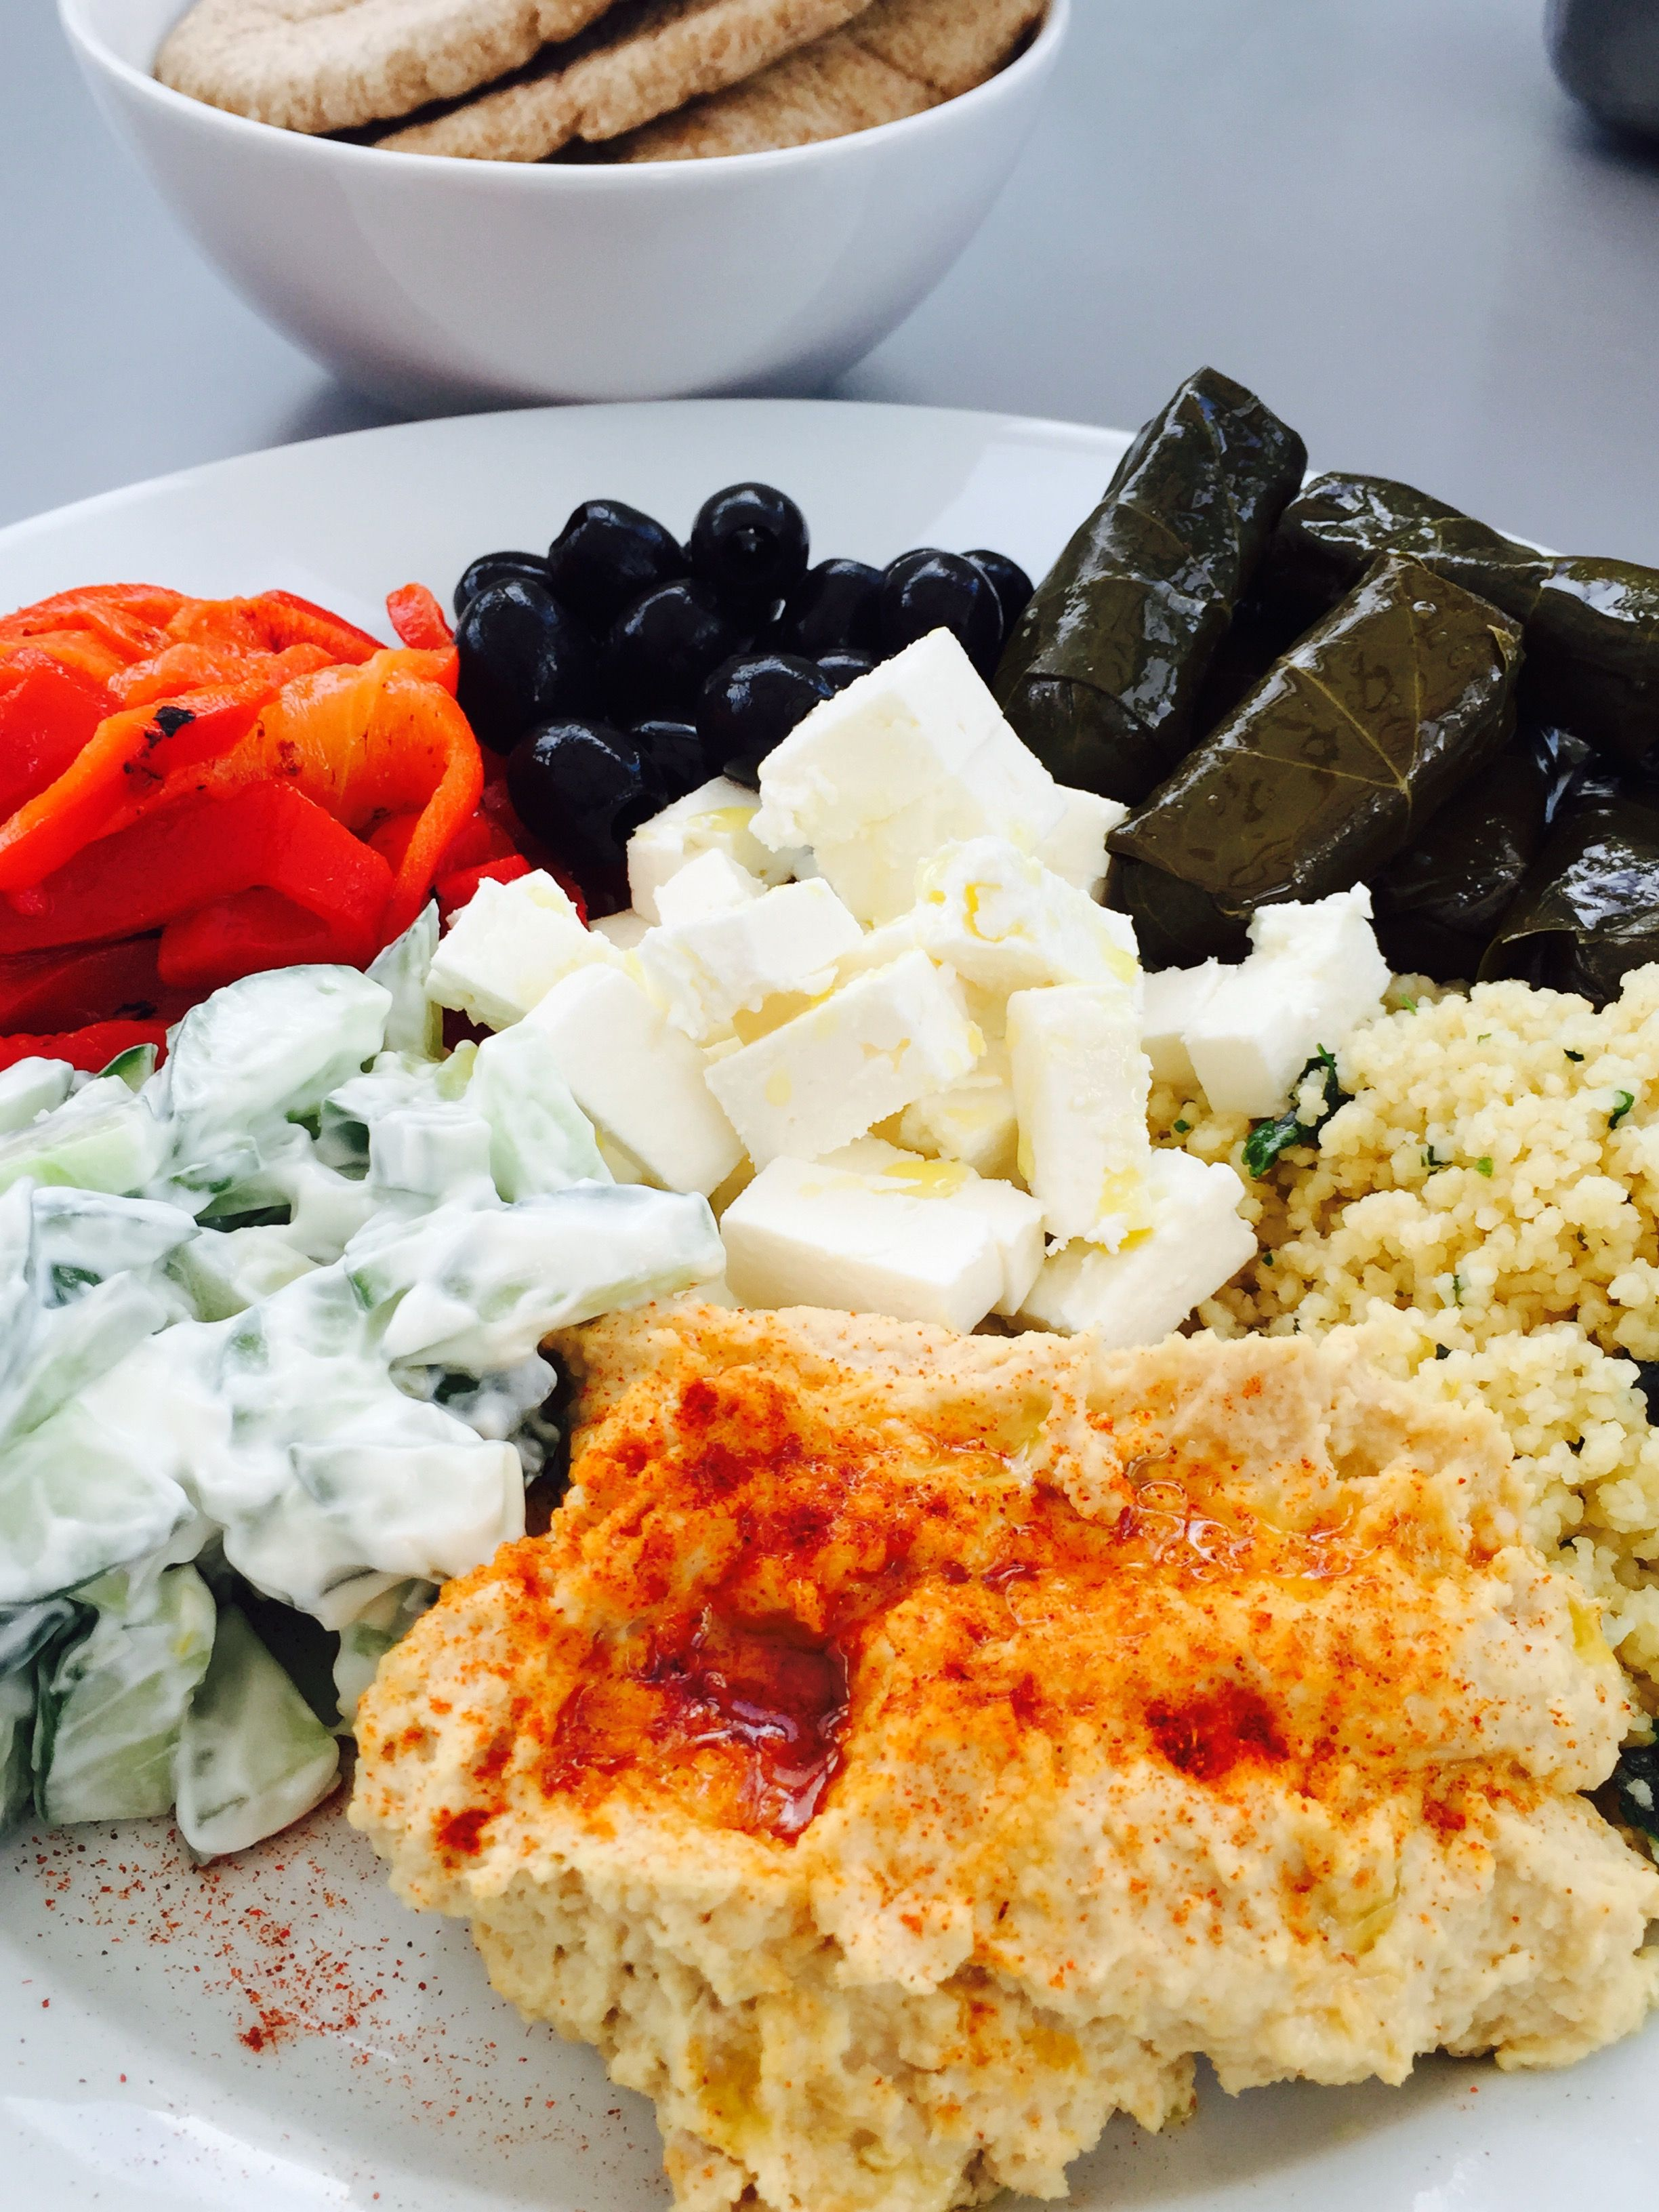 Easy mezze cooking foodsweetsbread pinterest greek pies and easy mezze mezze platter easy greek food how to make a mezze mezze recipes easy family food from daisies and pie forumfinder Images